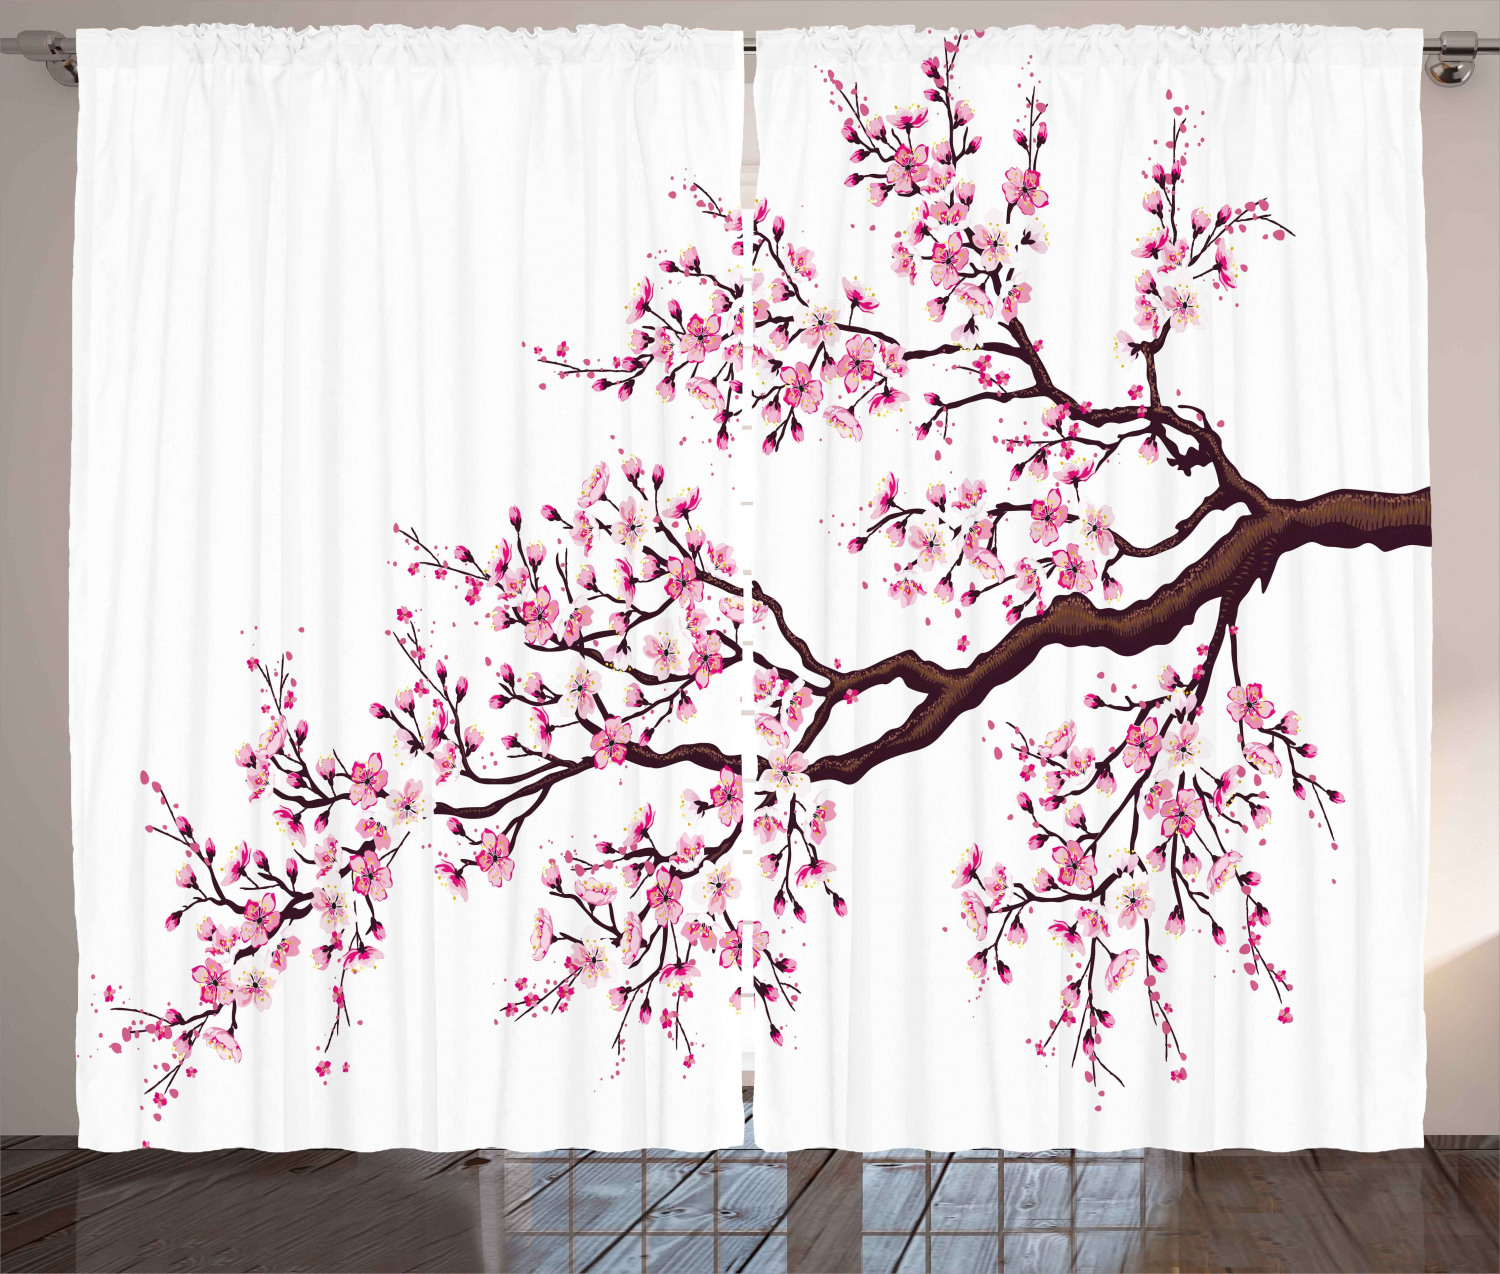 Japanese Curtains 2 Panels Set Branch Of A Flourishing Sakura Tree Flowers Cherry Blossoms Spring Theme Art Window Drapes For Living Room Bedroom 108w X 108l Inches Pink Dark Brown By Ambesonne